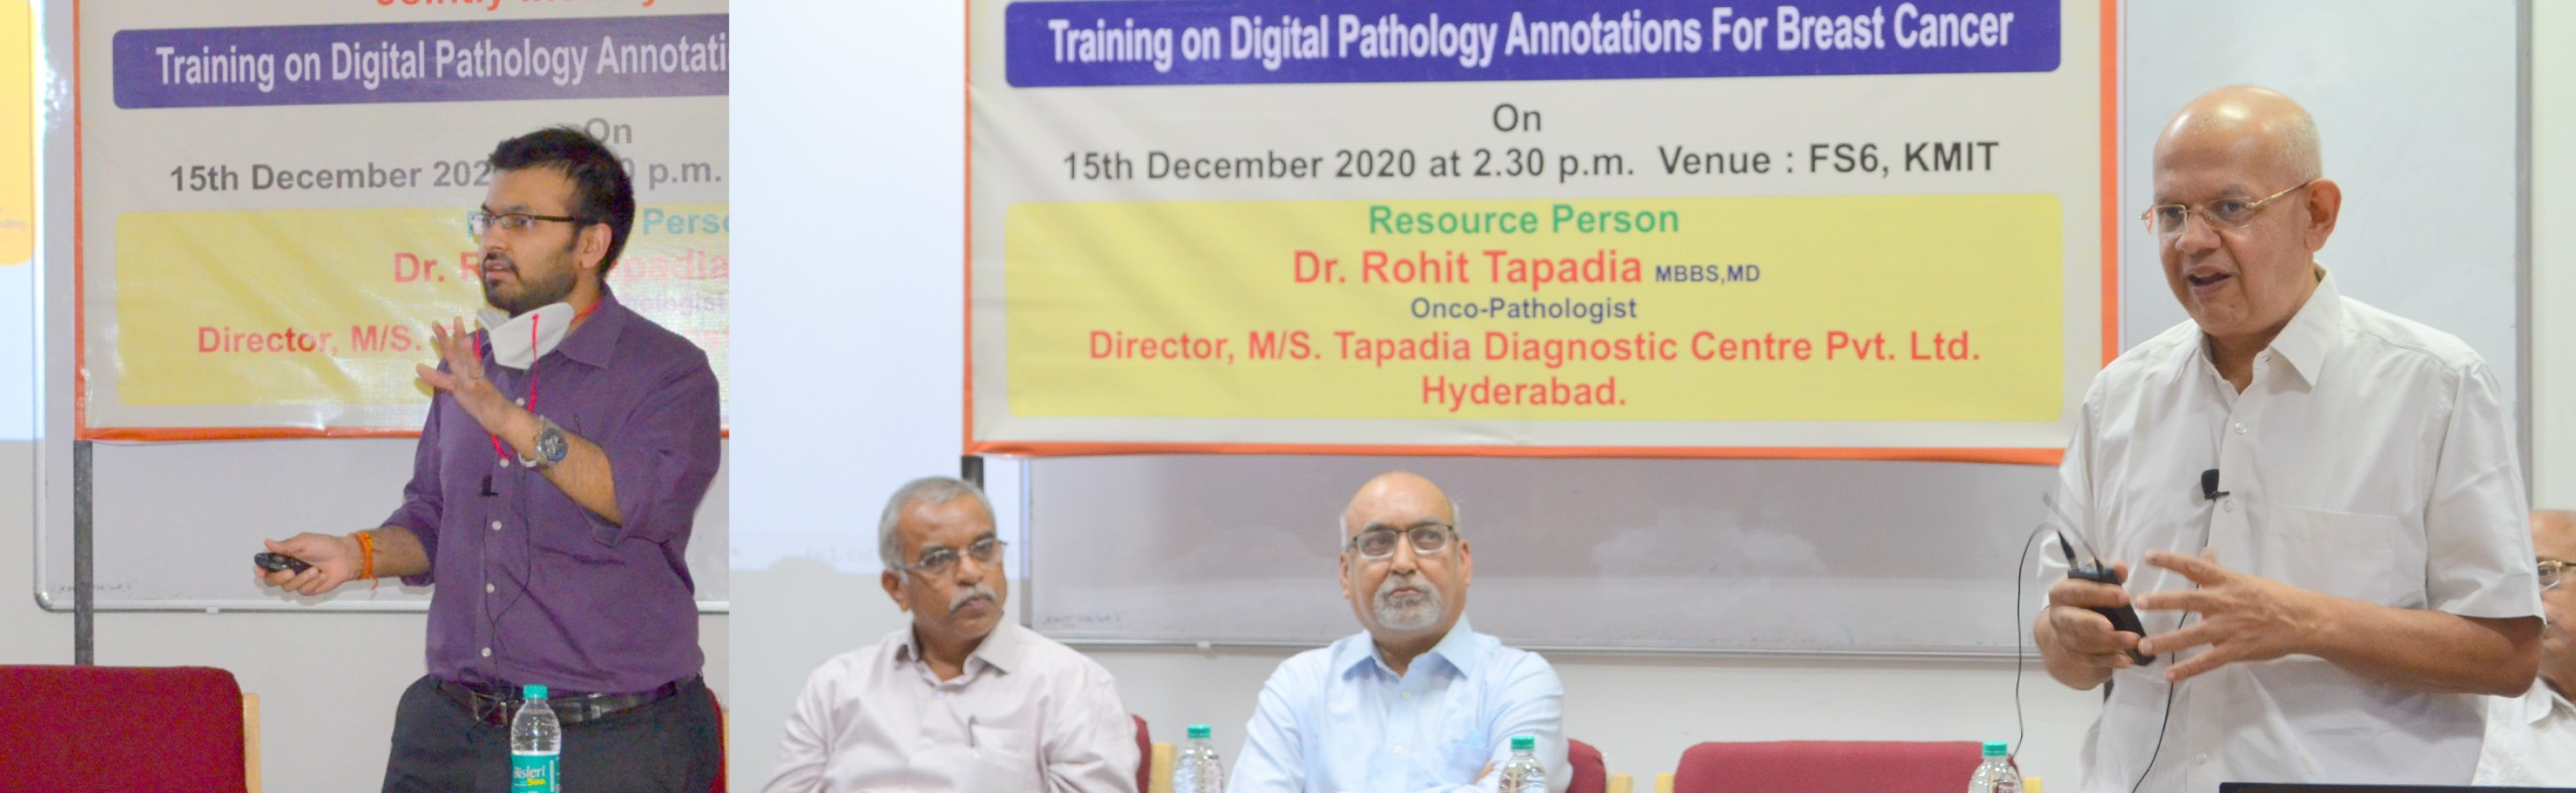 Training on Digital Pathology Annotations for Breast Cancer